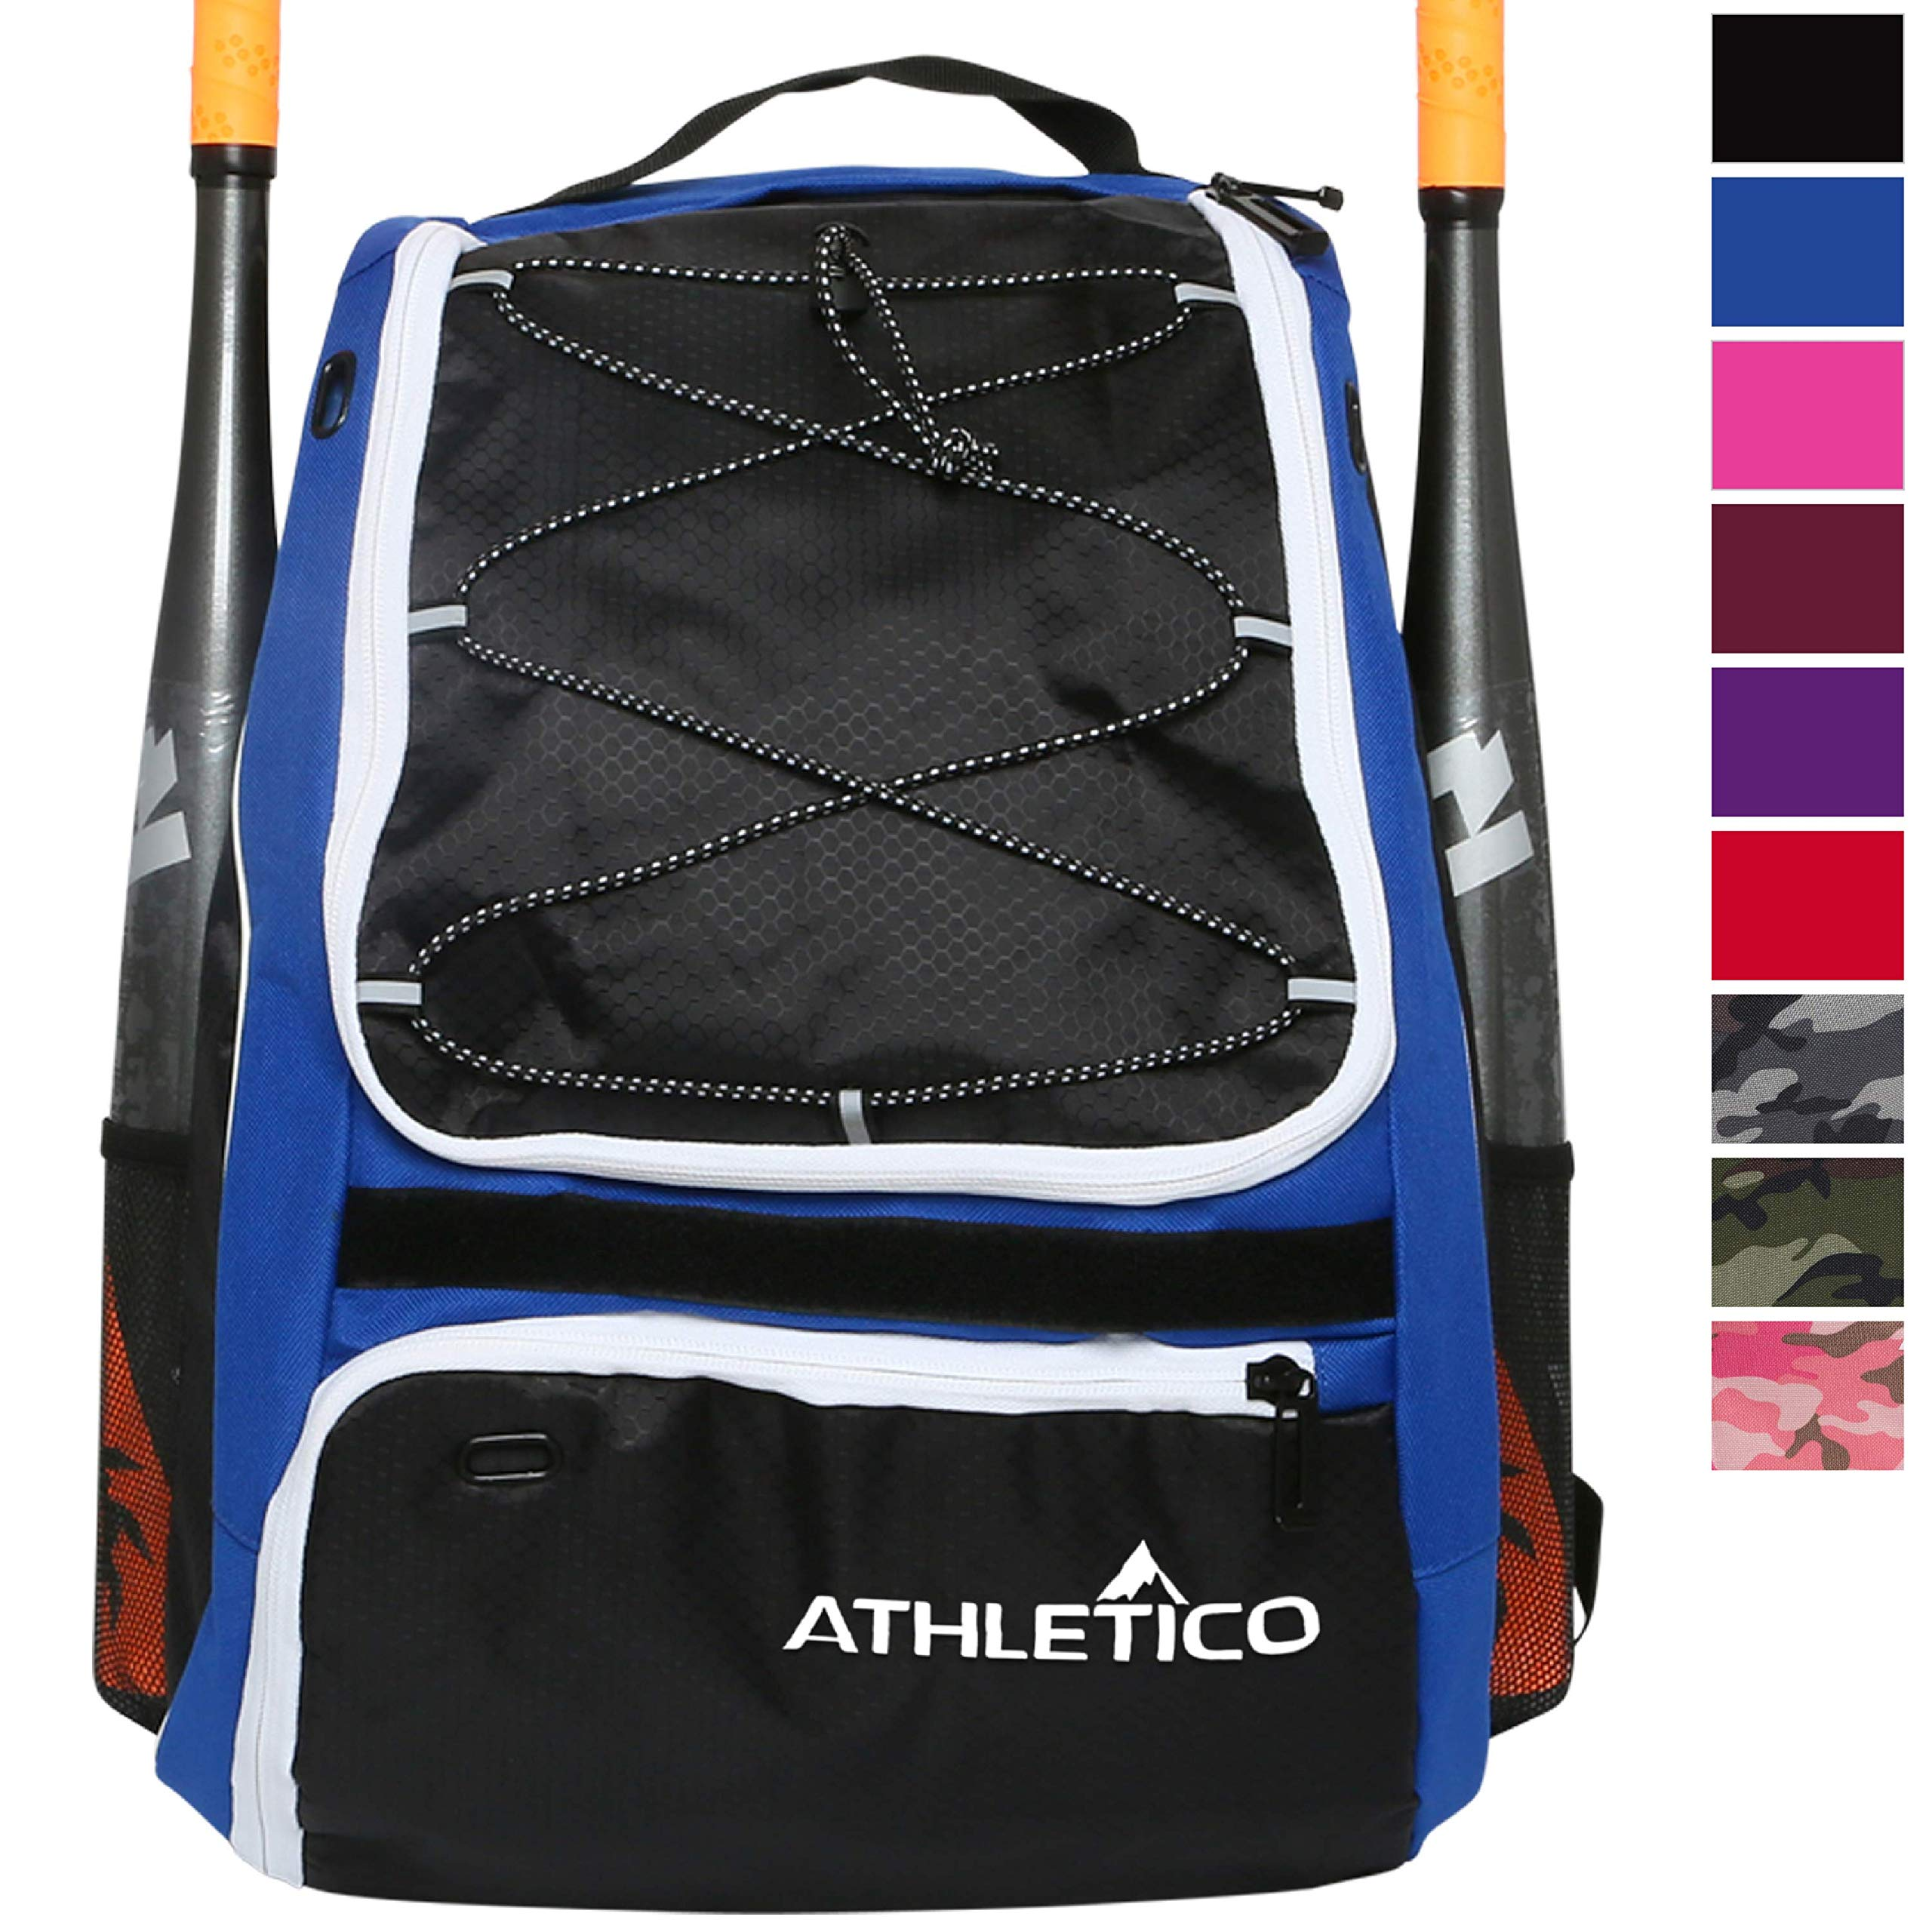 Athletico Baseball Bat Bag - Backpack for Baseball, T-Ball & Softball Equipment & Gear for Youth and Adults | Holds Bat, Helmet, Glove, Shoes | Separate Shoe Compartment & Fence Hook (Blue) by Athletico